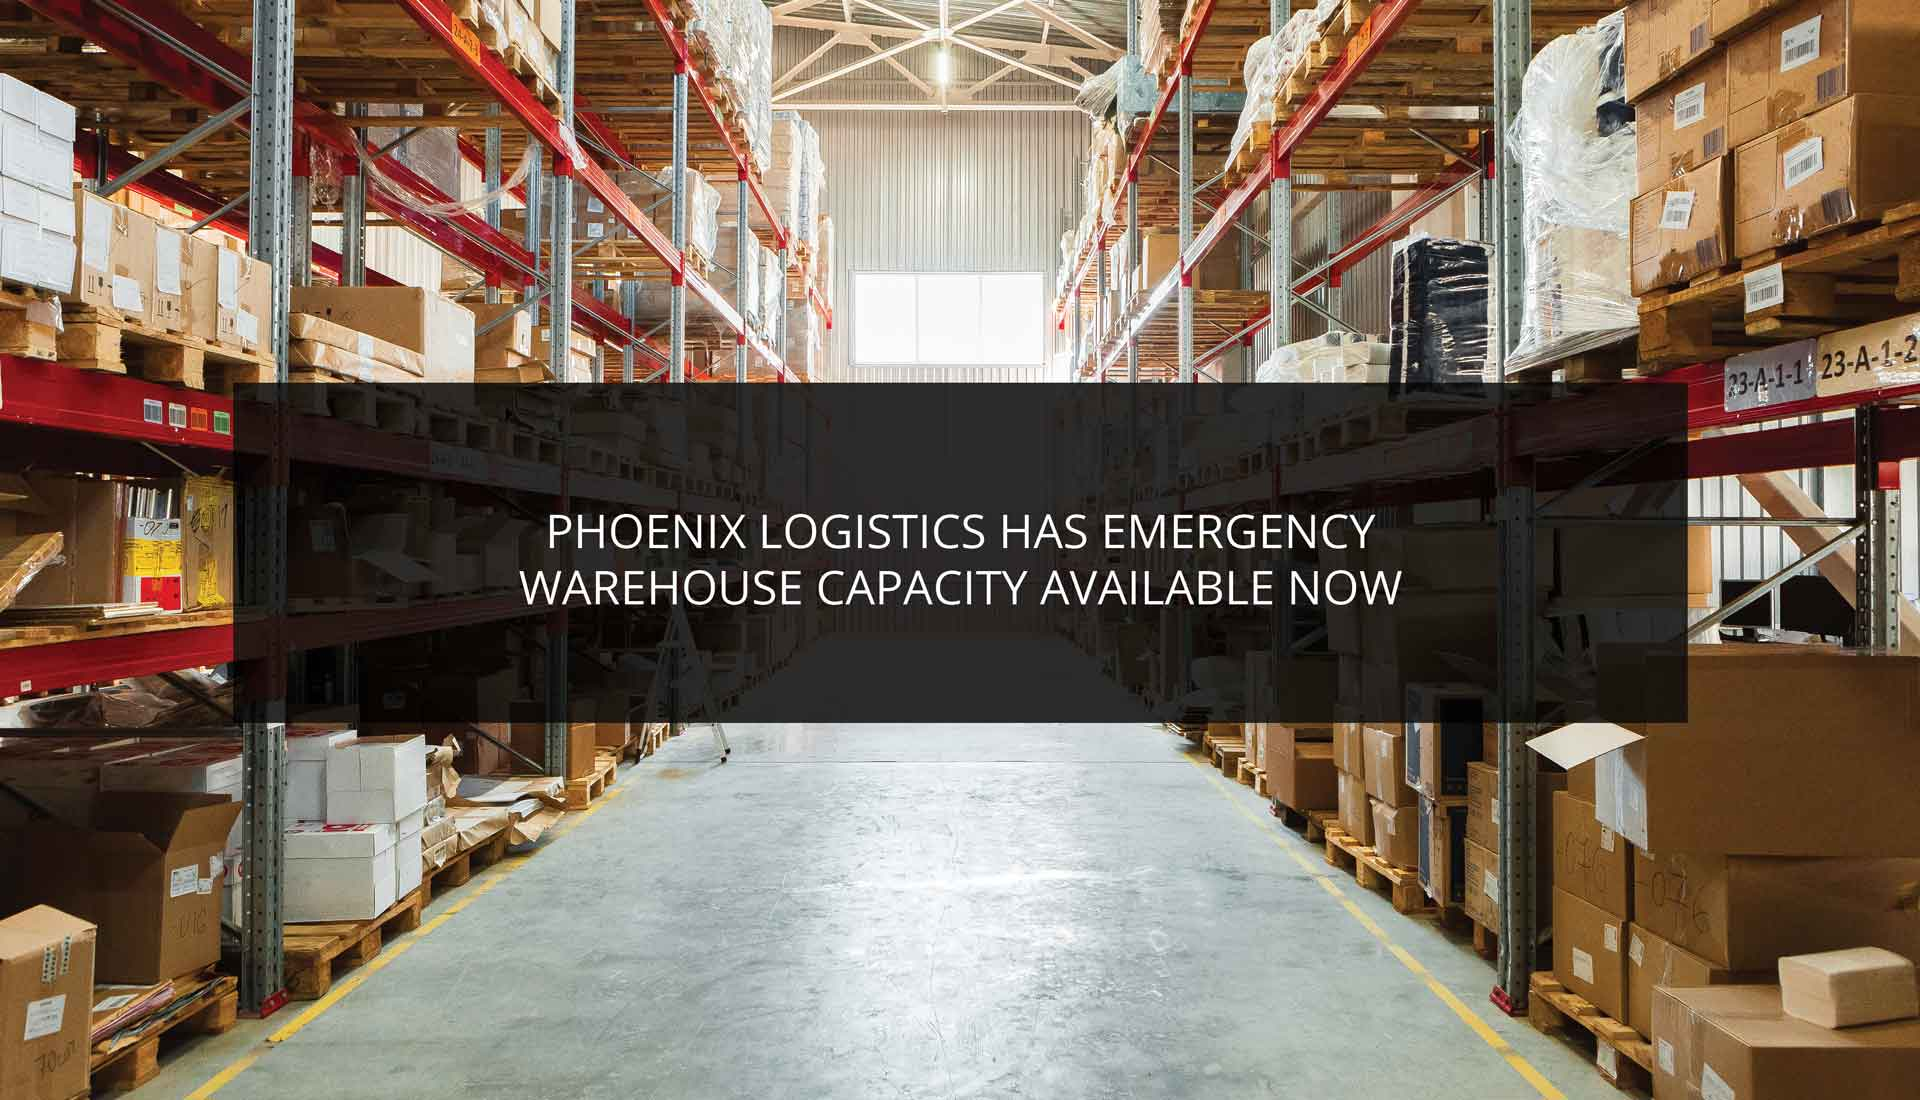 Phoenix Logistics Has Emergency Warehouse Capacity Available Now